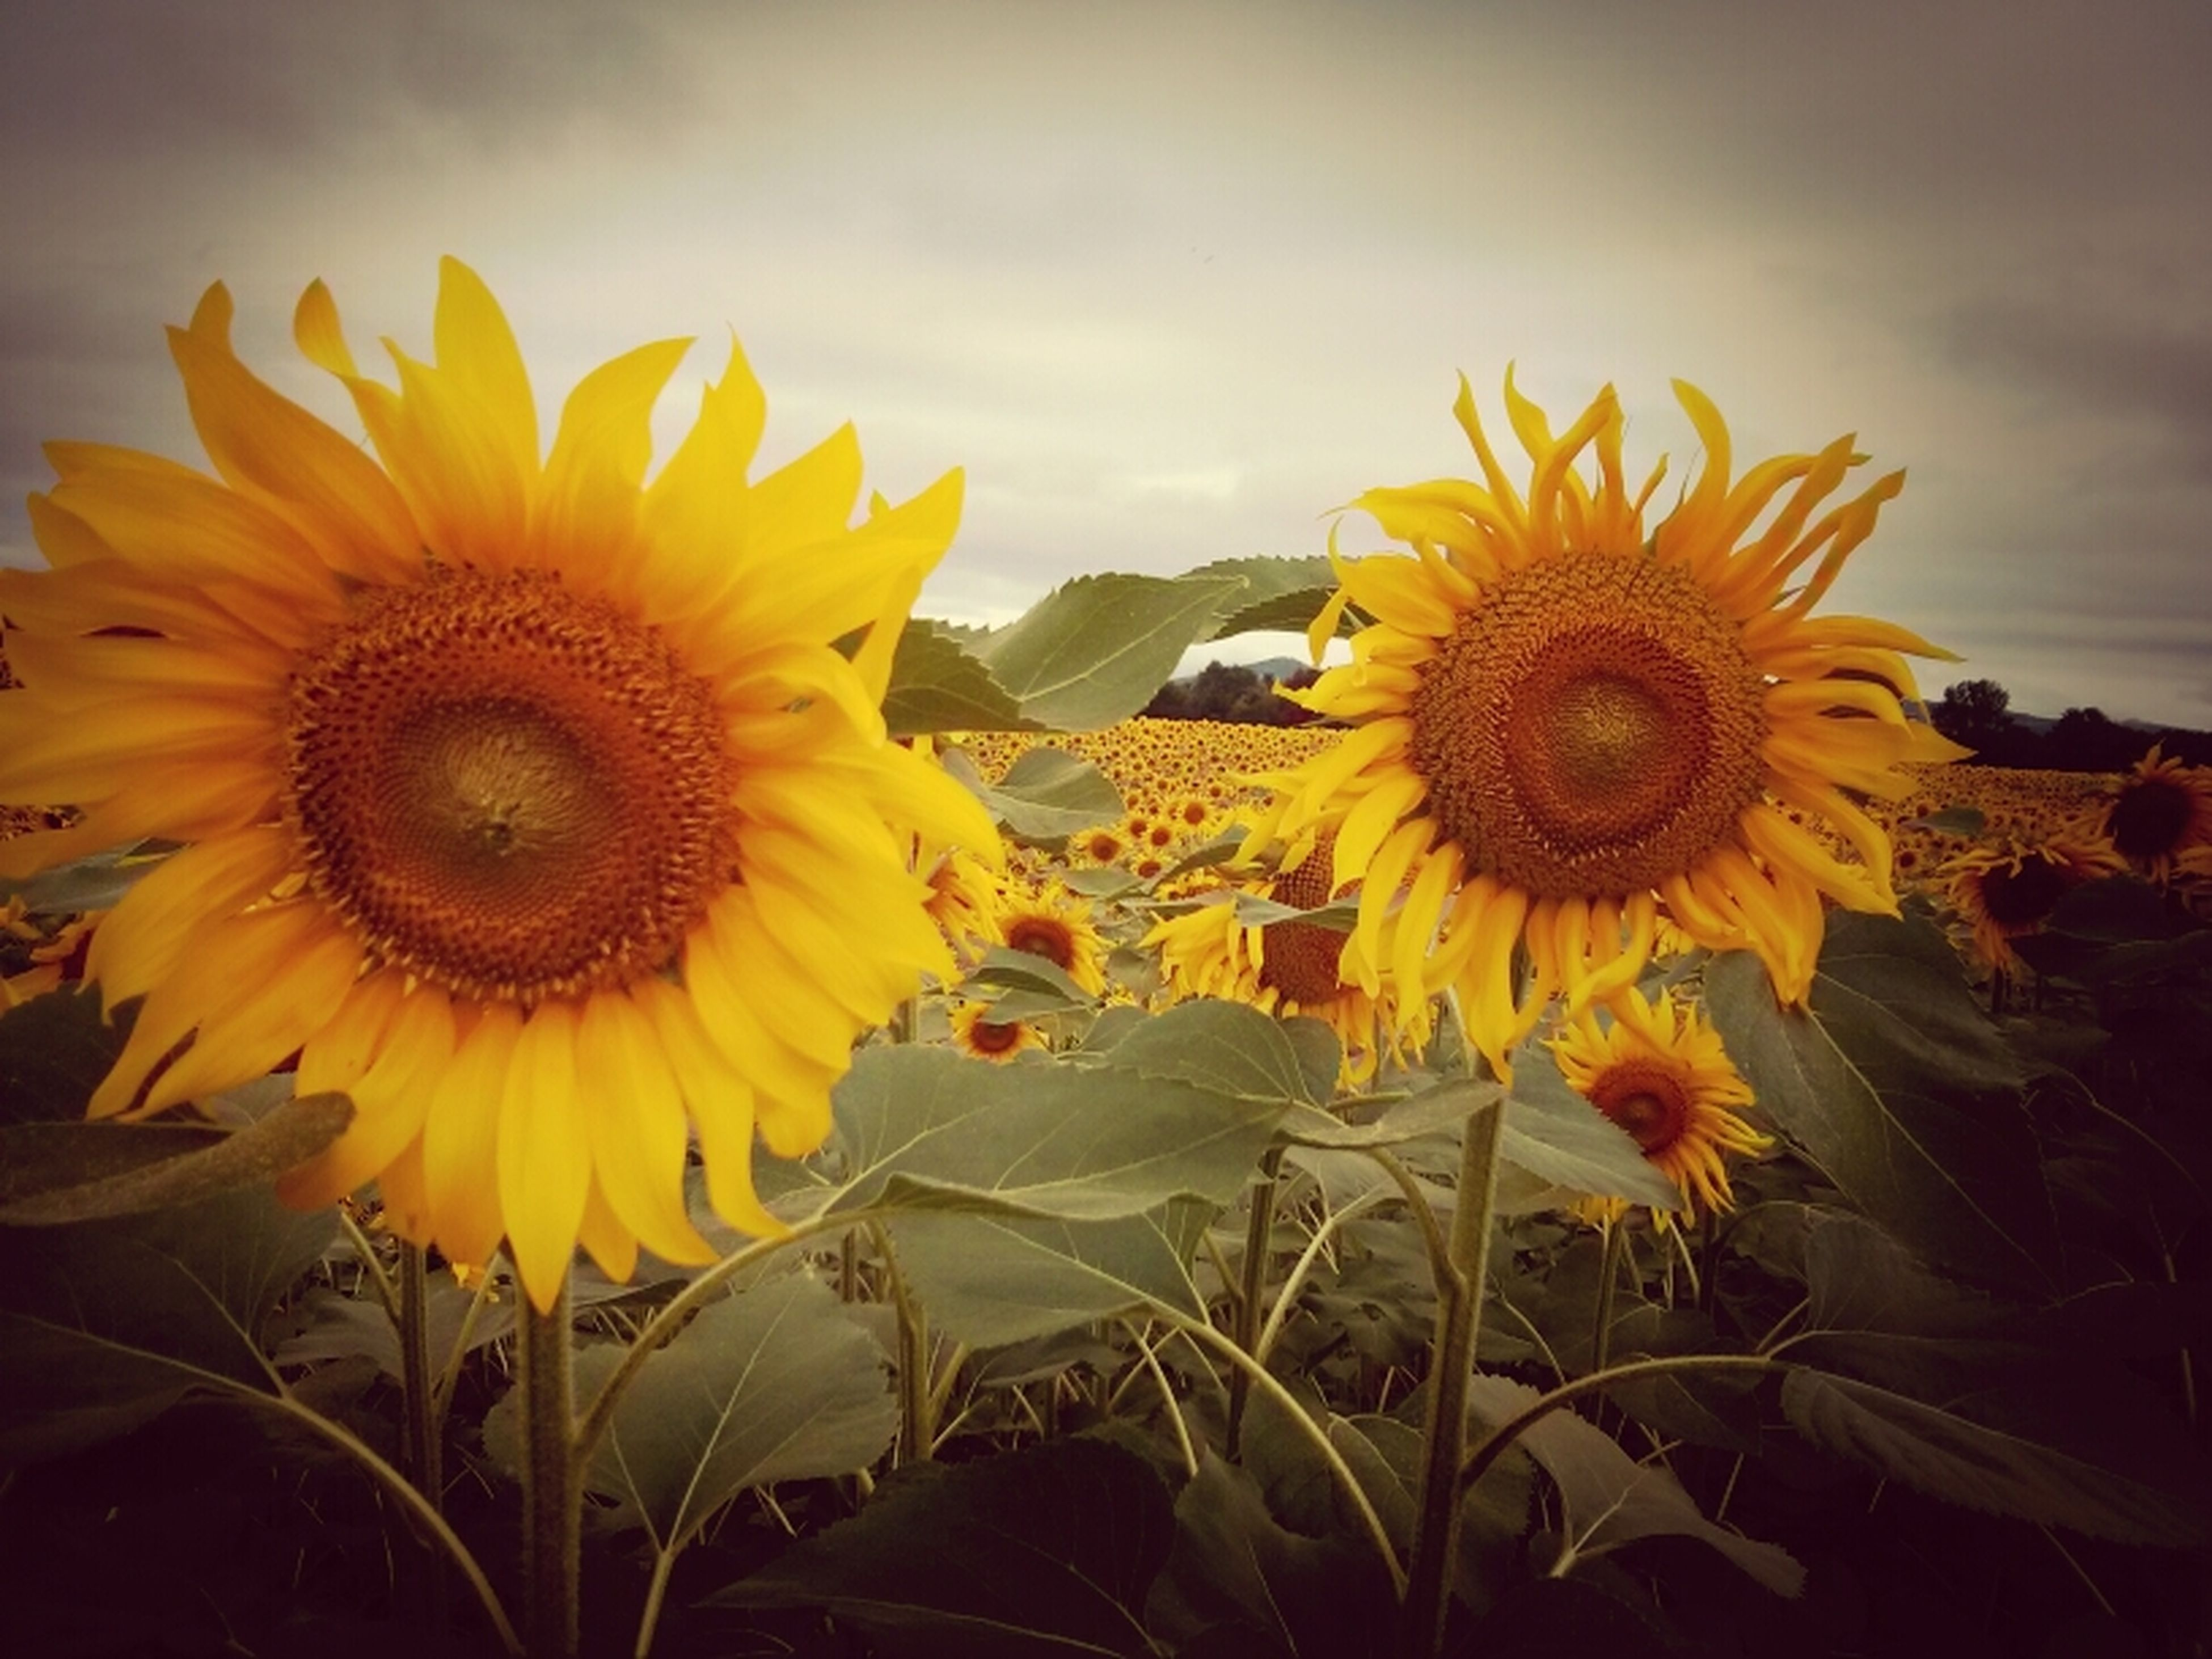 flower, sunflower, yellow, flower head, freshness, petal, fragility, growth, beauty in nature, pollen, blooming, plant, nature, sky, field, close-up, outdoors, in bloom, no people, focus on foreground